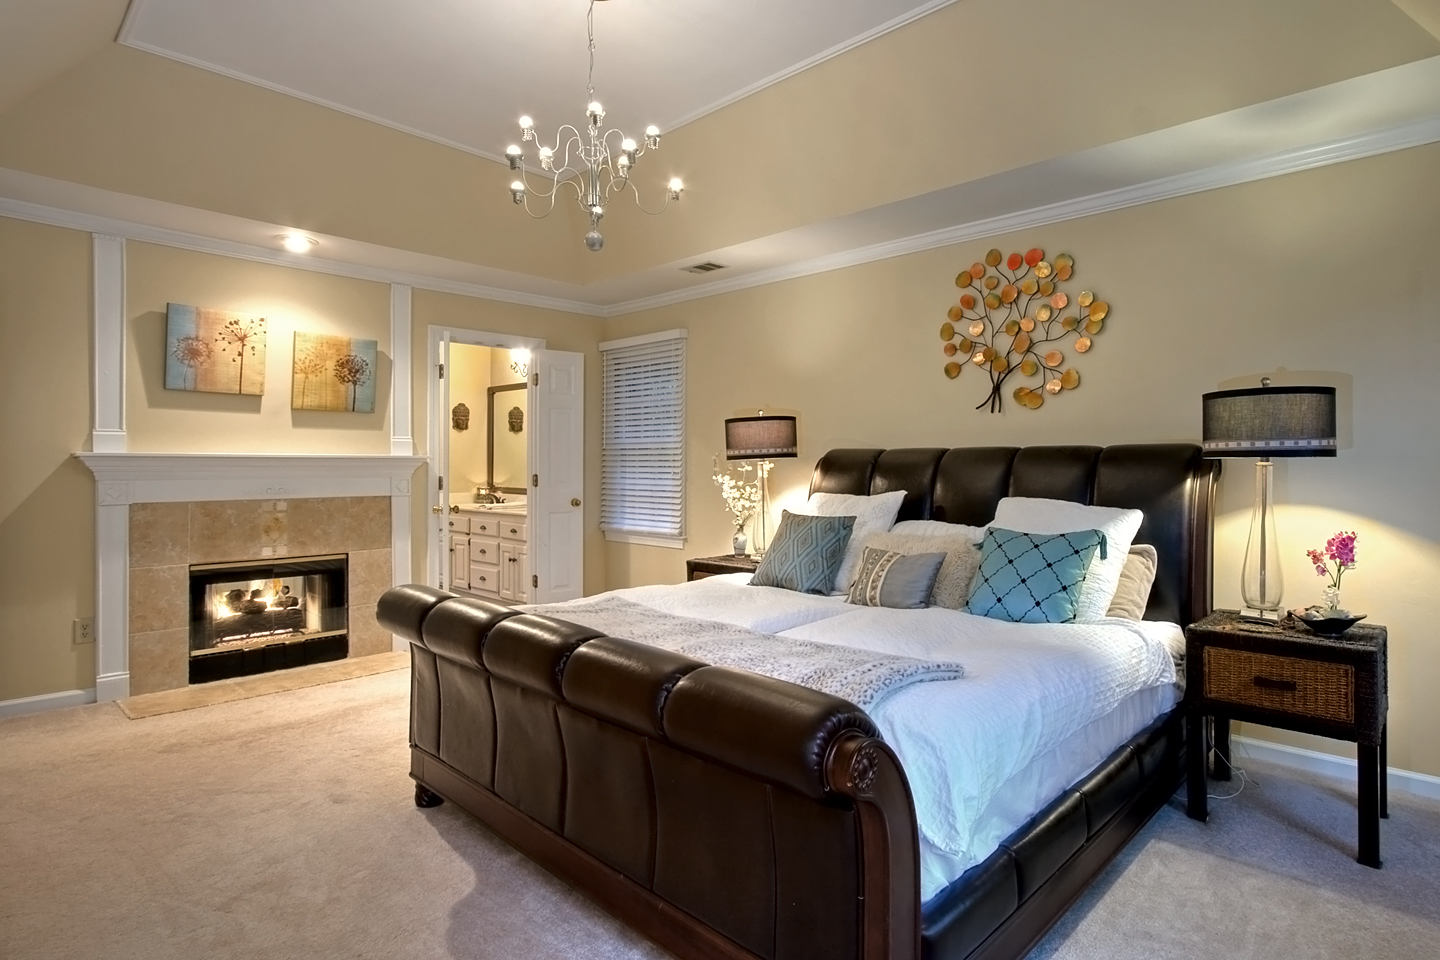 Home Interior Pictures For Sale Part - 42: Interiors Photography Of Master Bedroom In Marietta